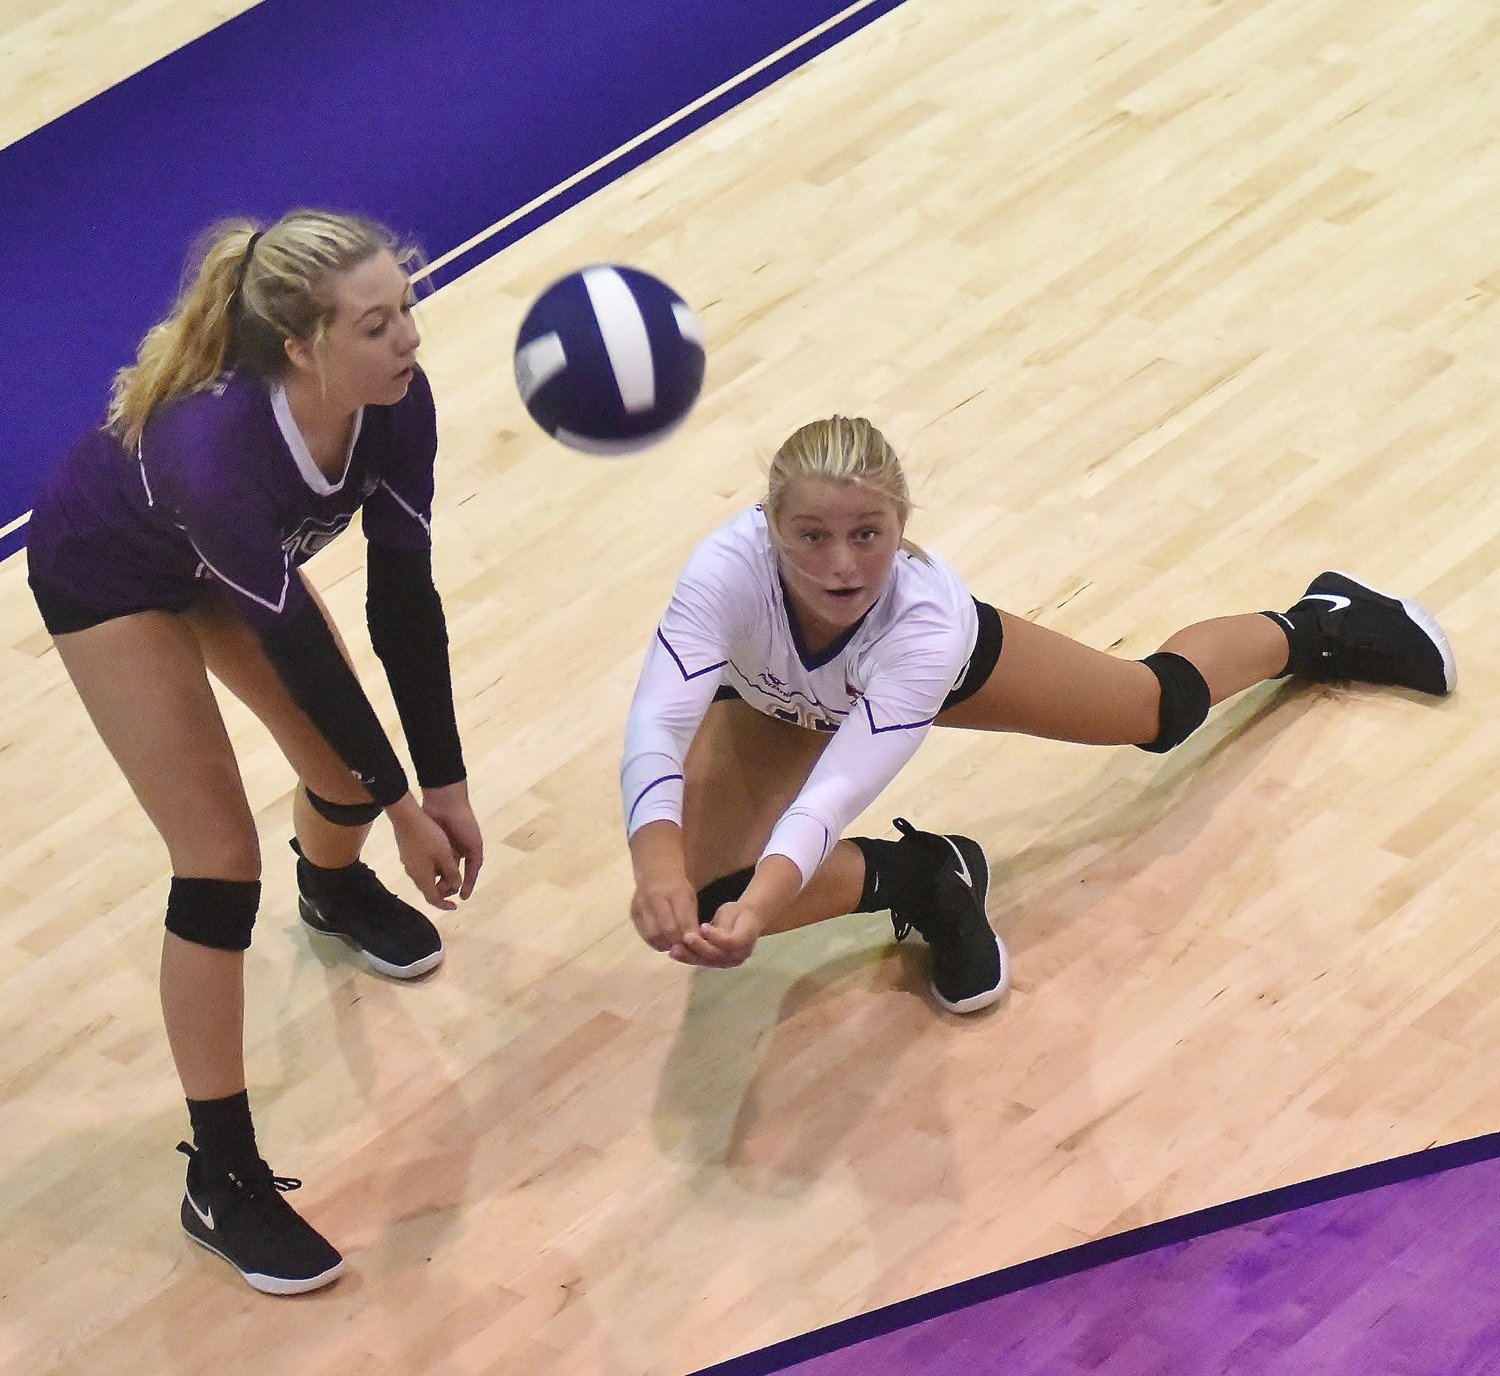 Anna Mathis, left, digs the ball ahead of Anna Grace Brock during a 2018 Cartersville volleyball match. Mathis and several seniors from last year's state semifinalist team have graduated, but Brock and plenty of young players are preparing to keep the Canes among the best programs in Class 4A.